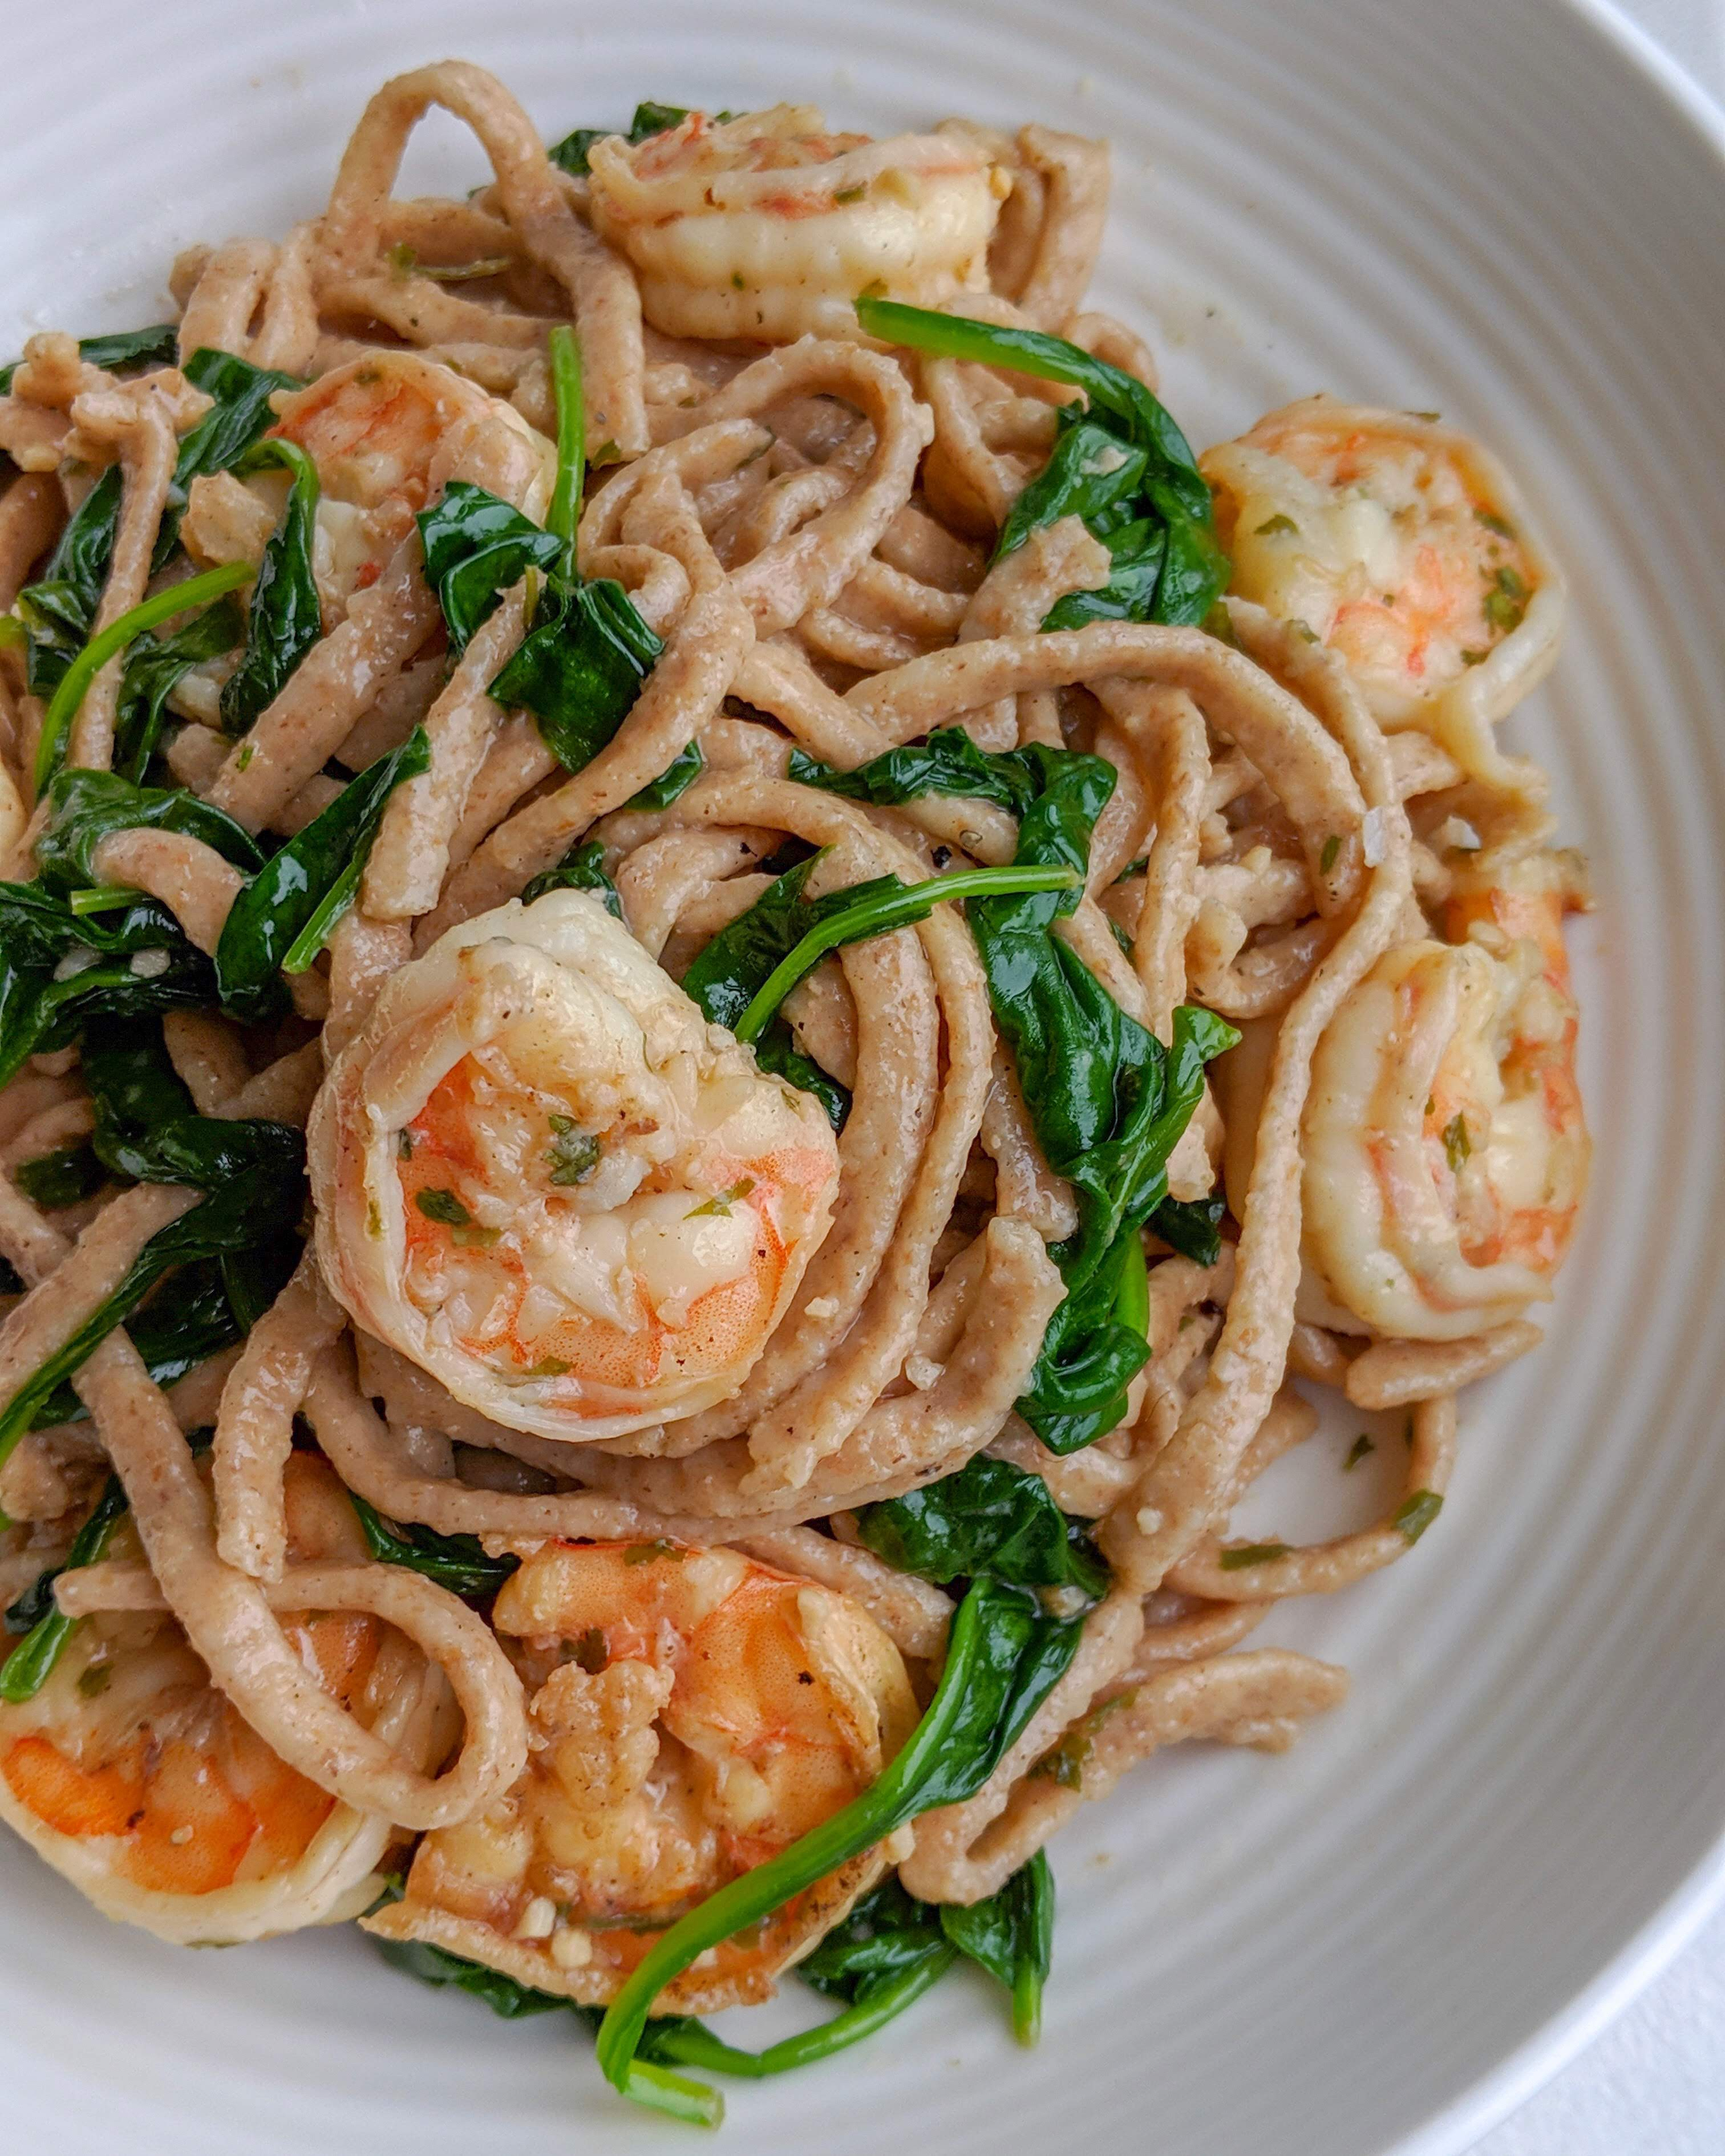 A plate of farro pasta with a butter and garlic white wine sauce, tossed with seared shrimp and spinach